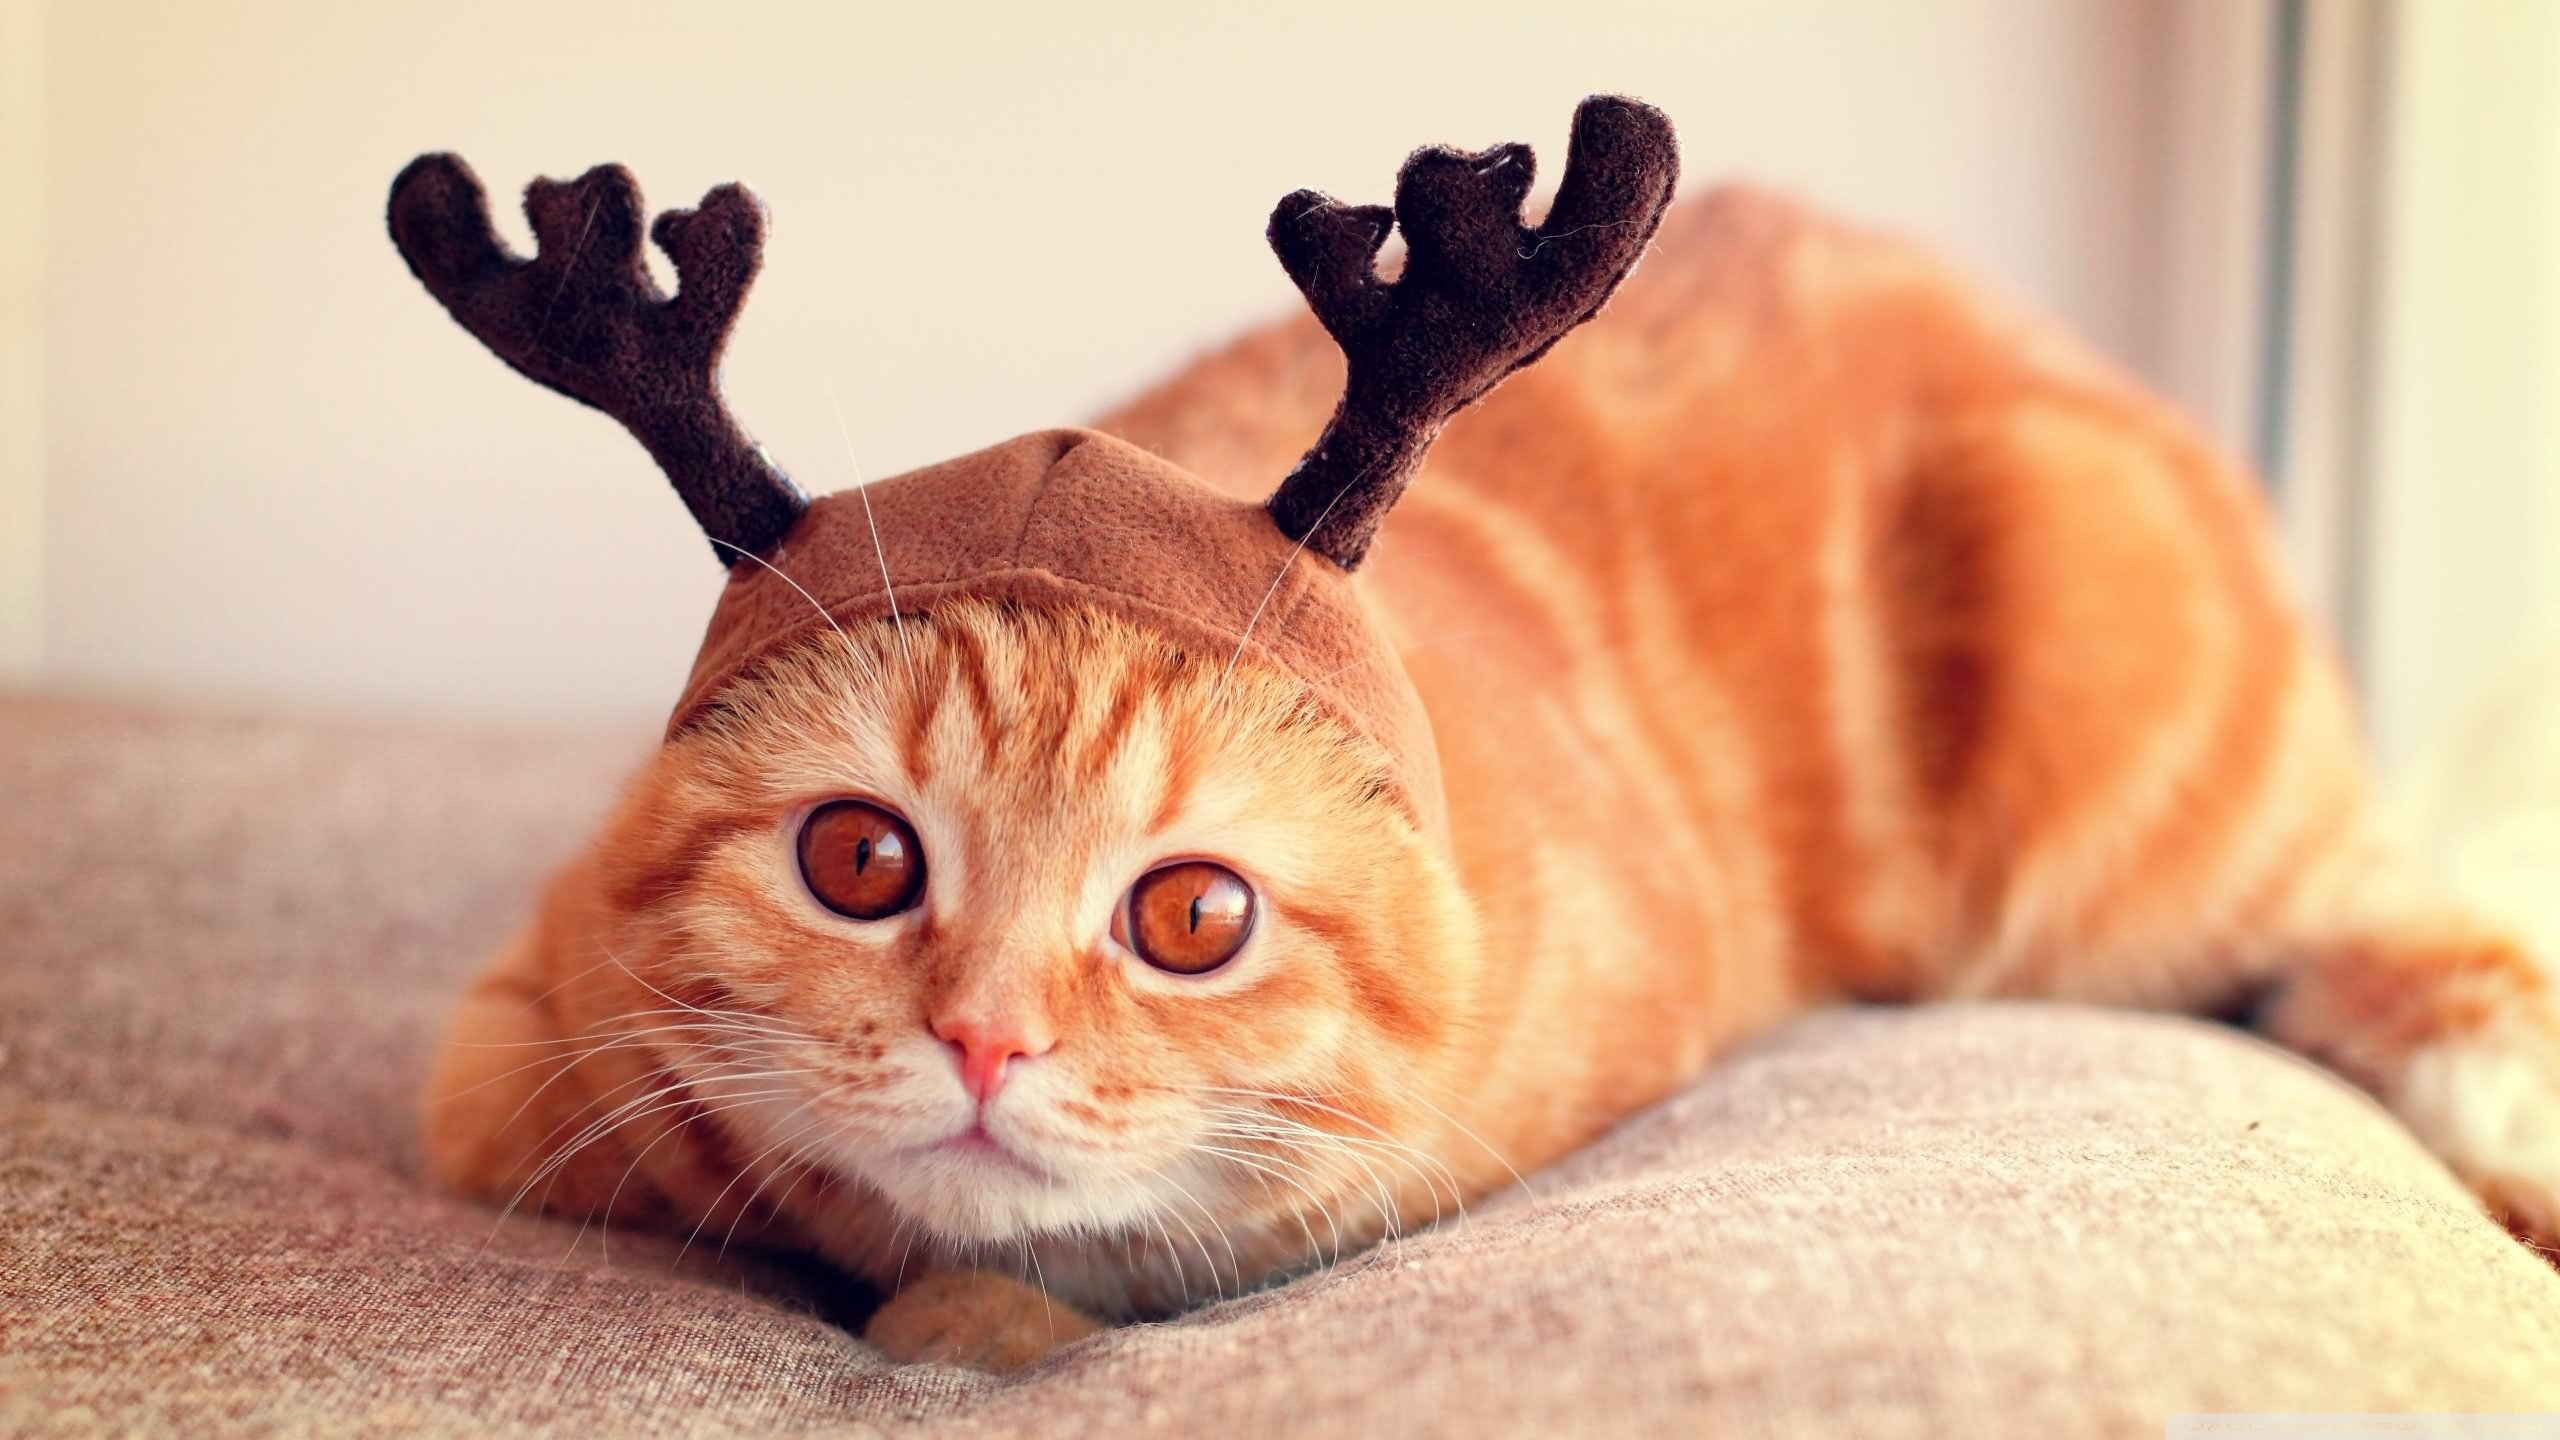 Funny Reindeer Meme : 15 most funny reindeer photos and images